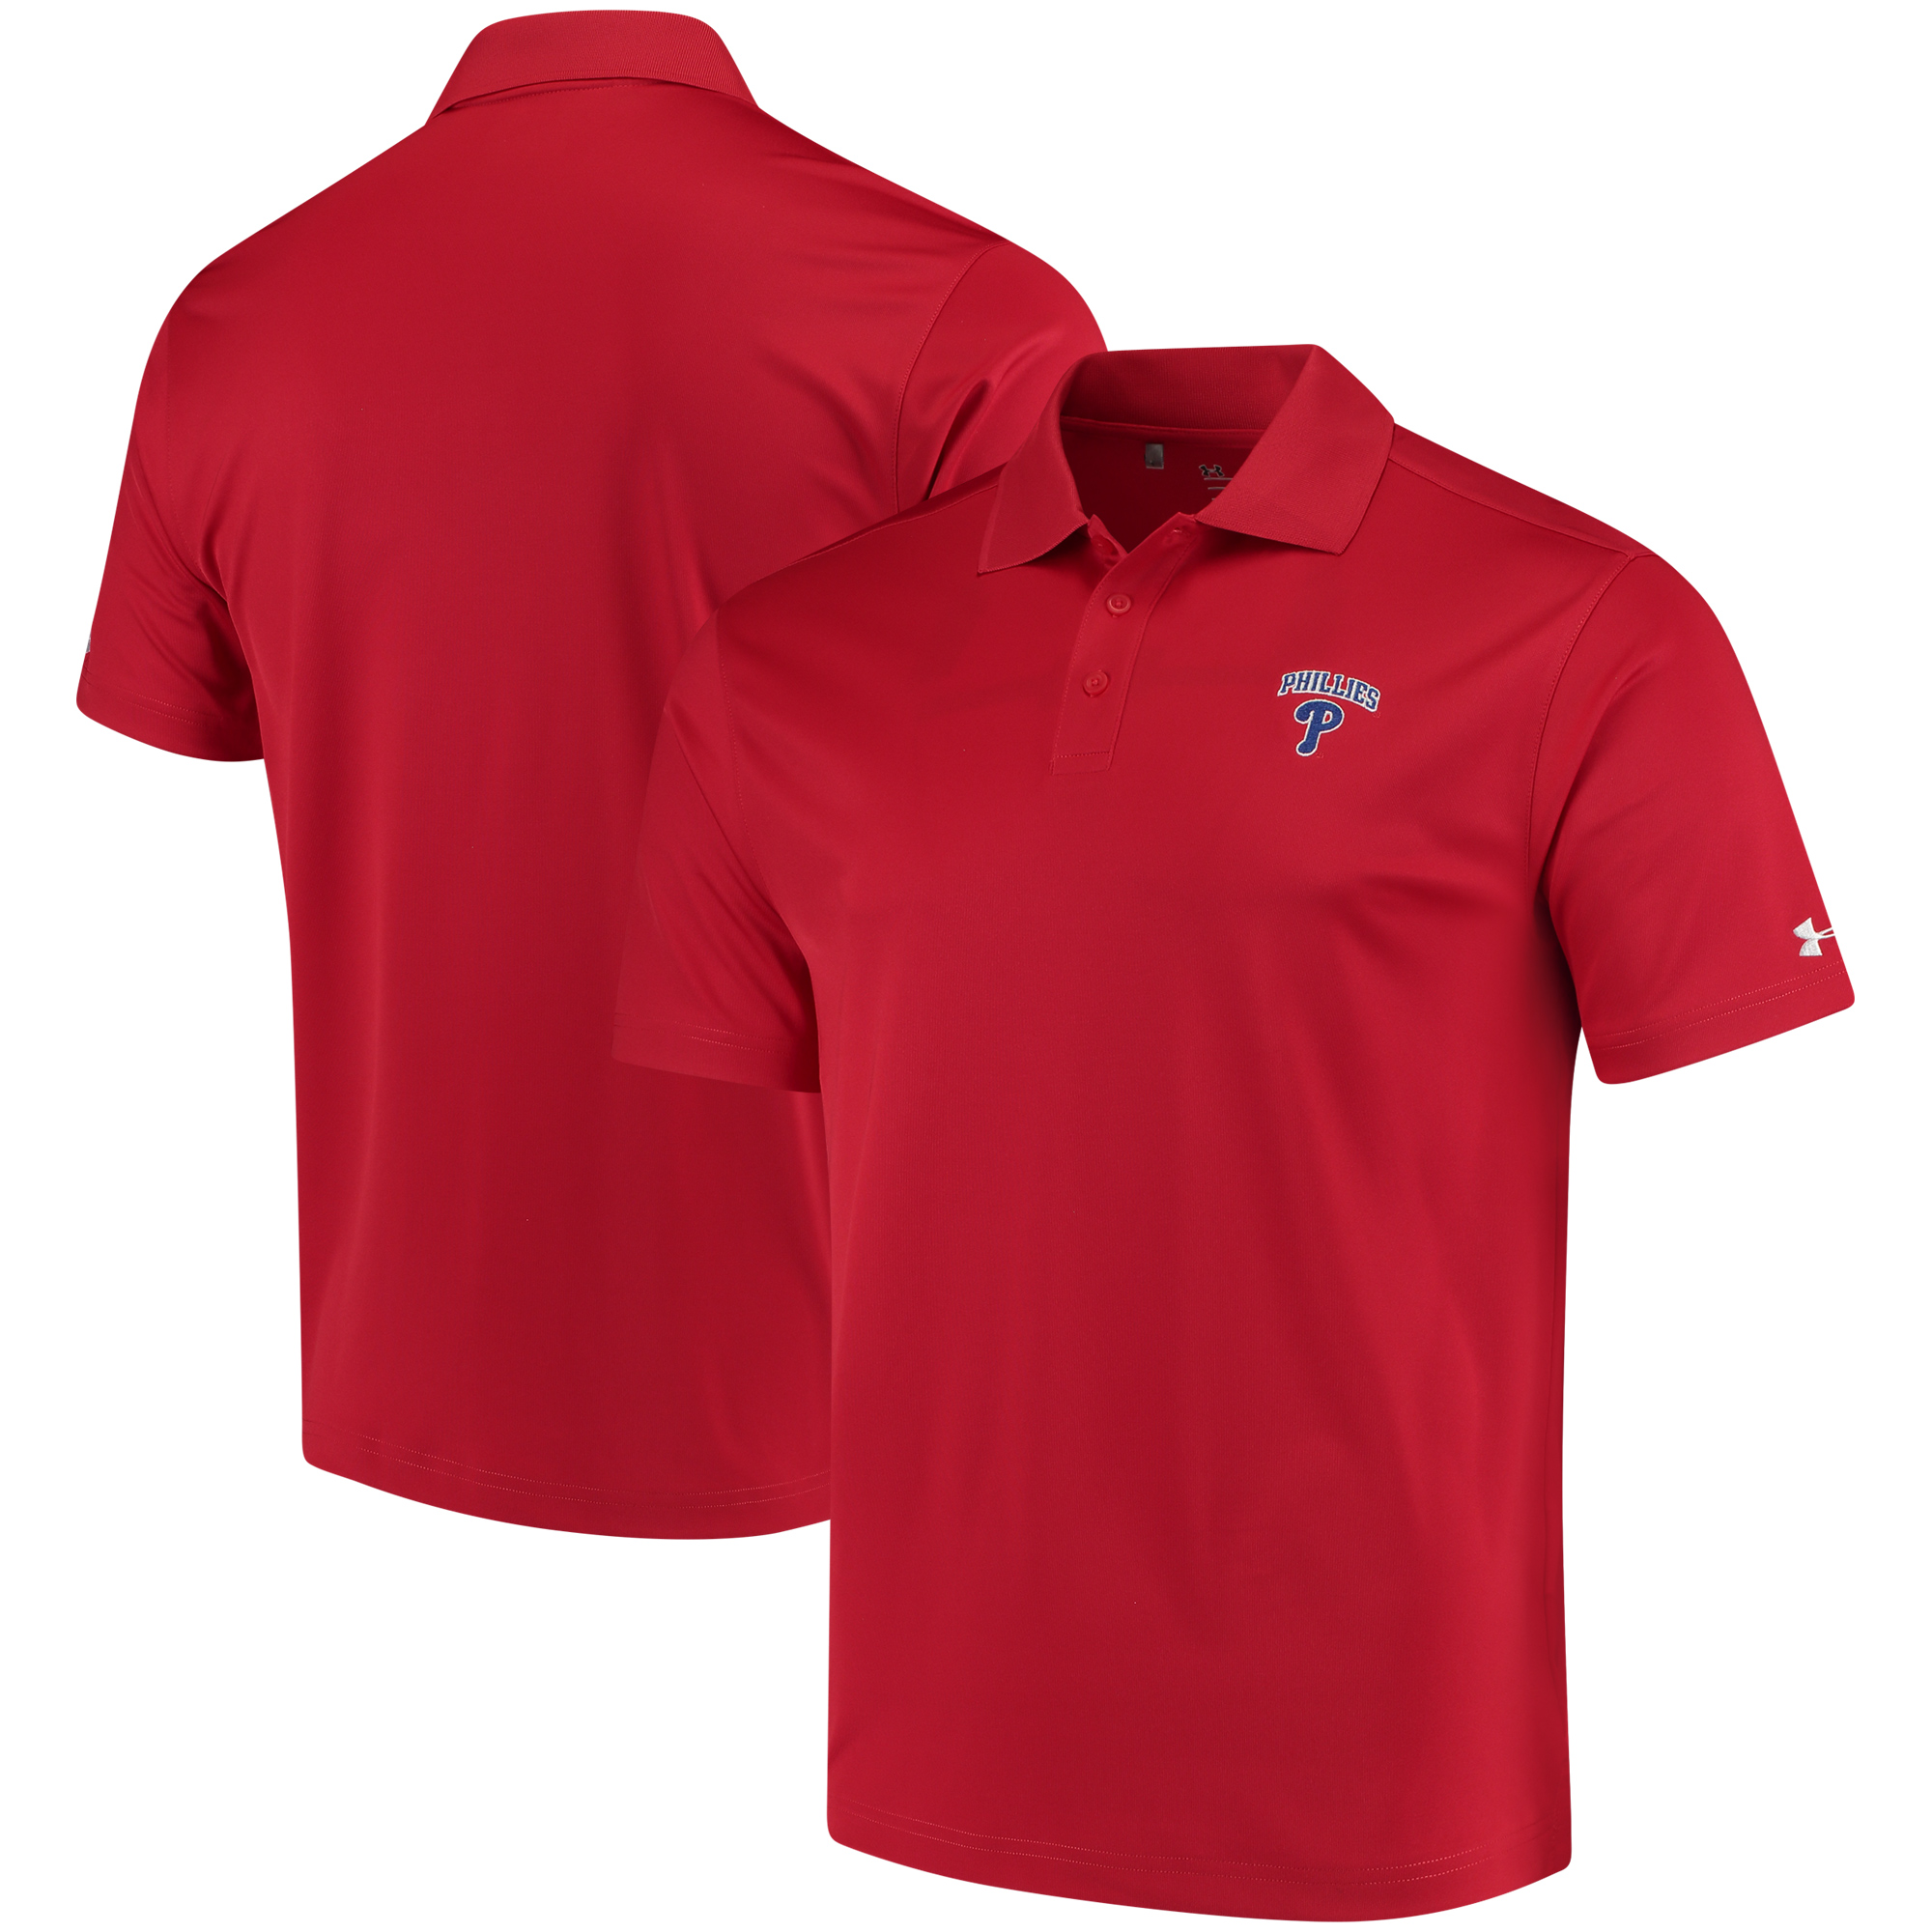 Philadelphia Phillies Under Armour Performance Polo - Red